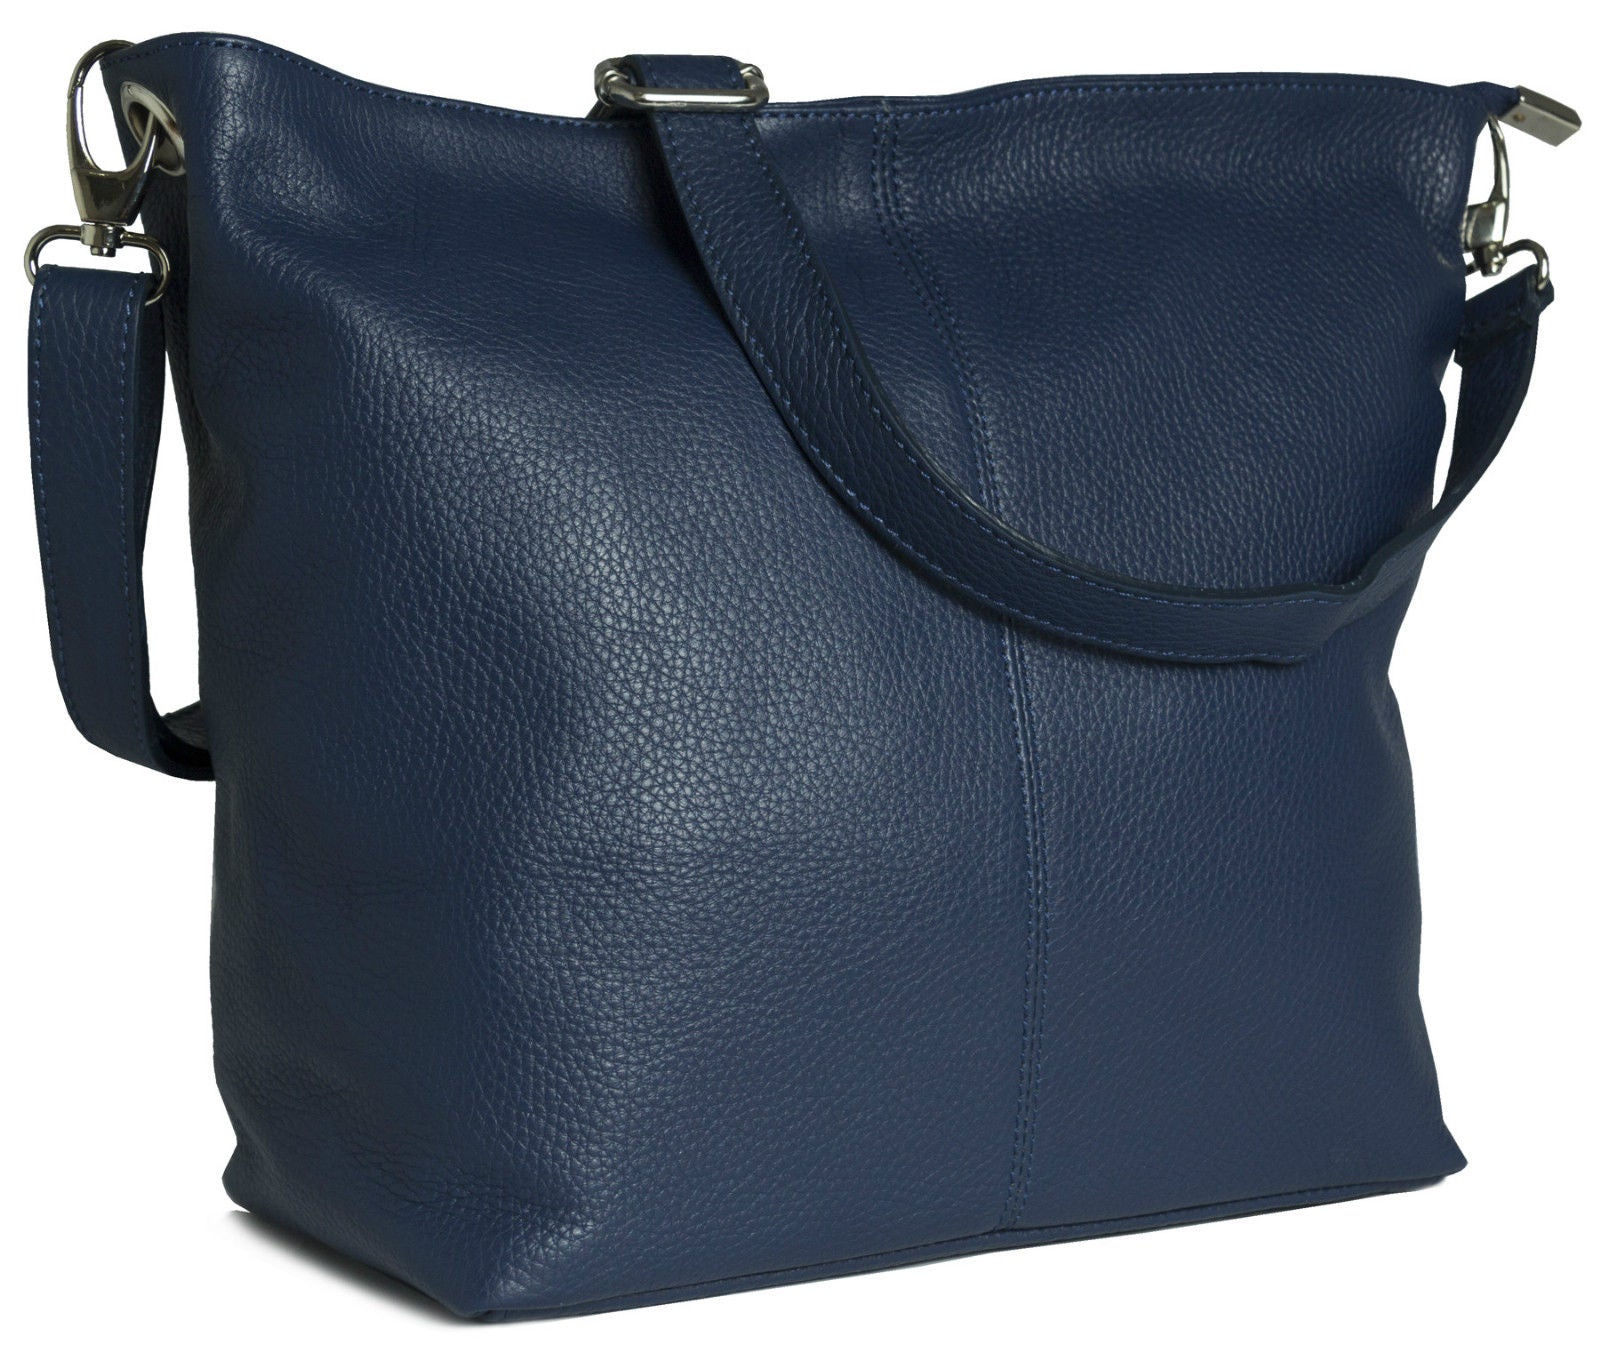 Classic Leather Shoulder Cross Body Bag - Navy